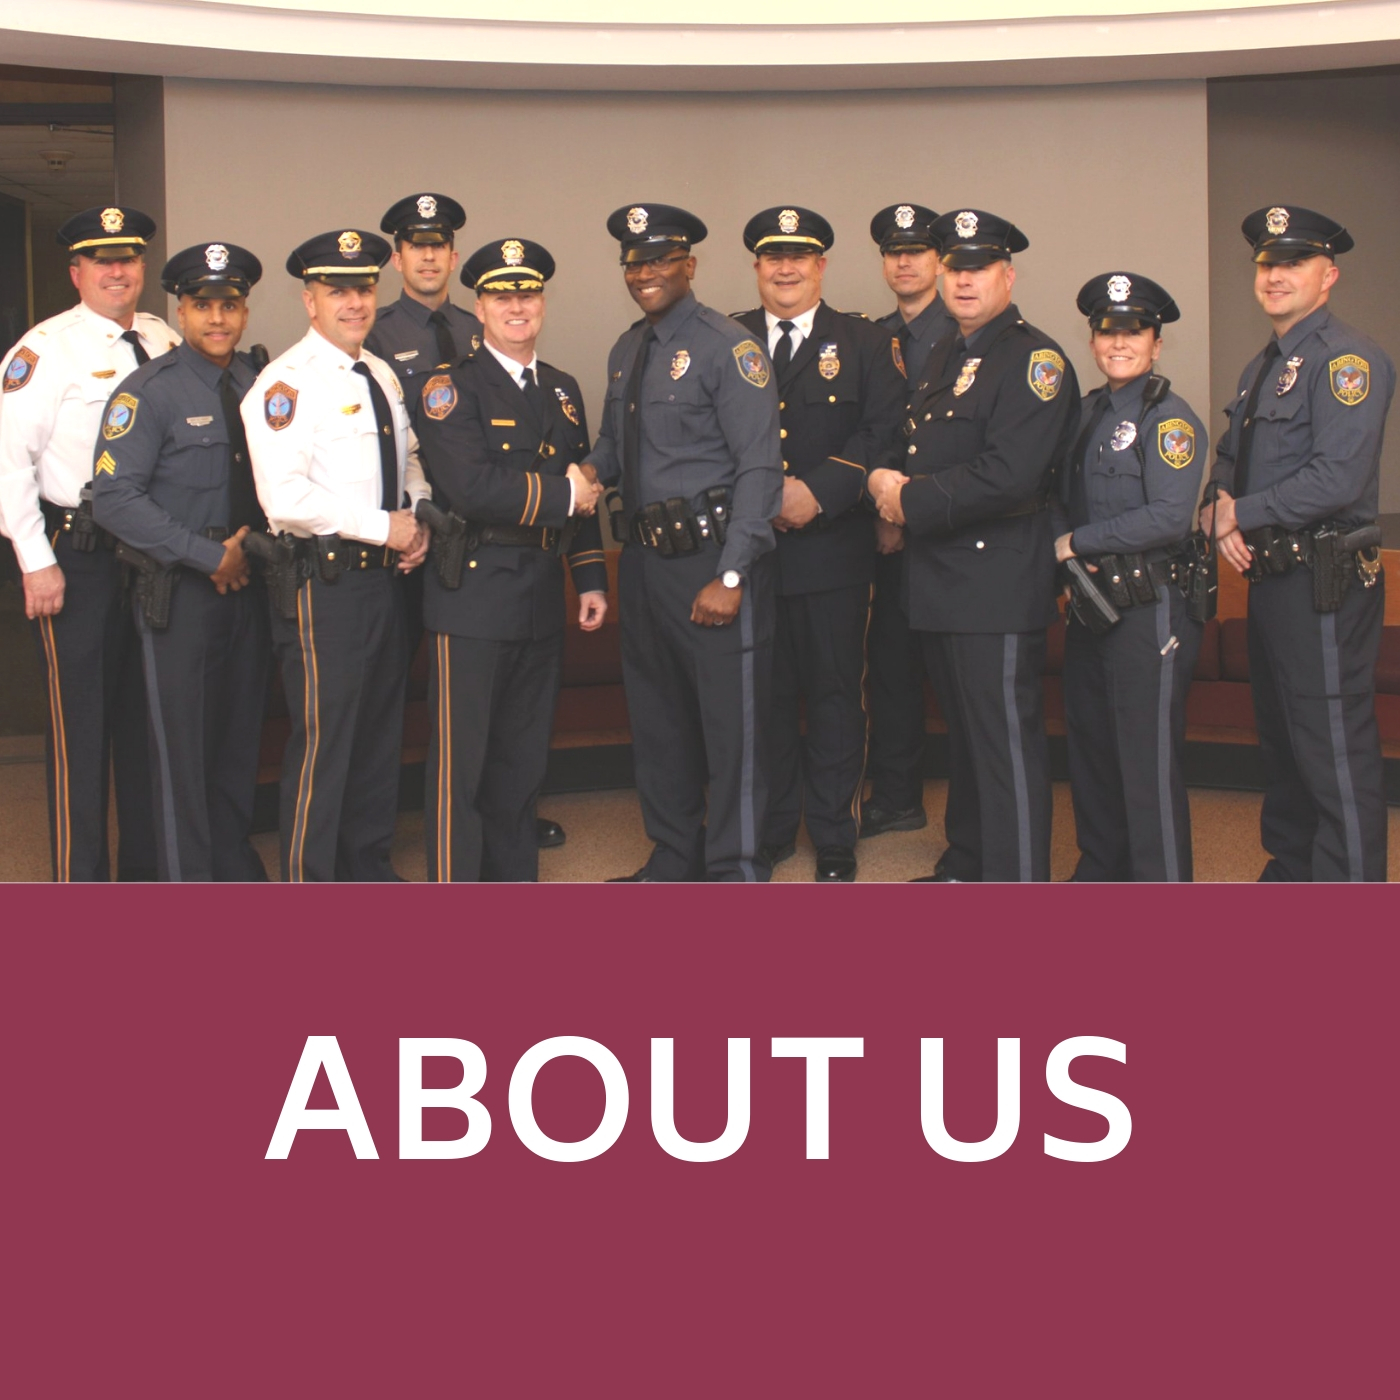 Police group image that links to information about the Police Department